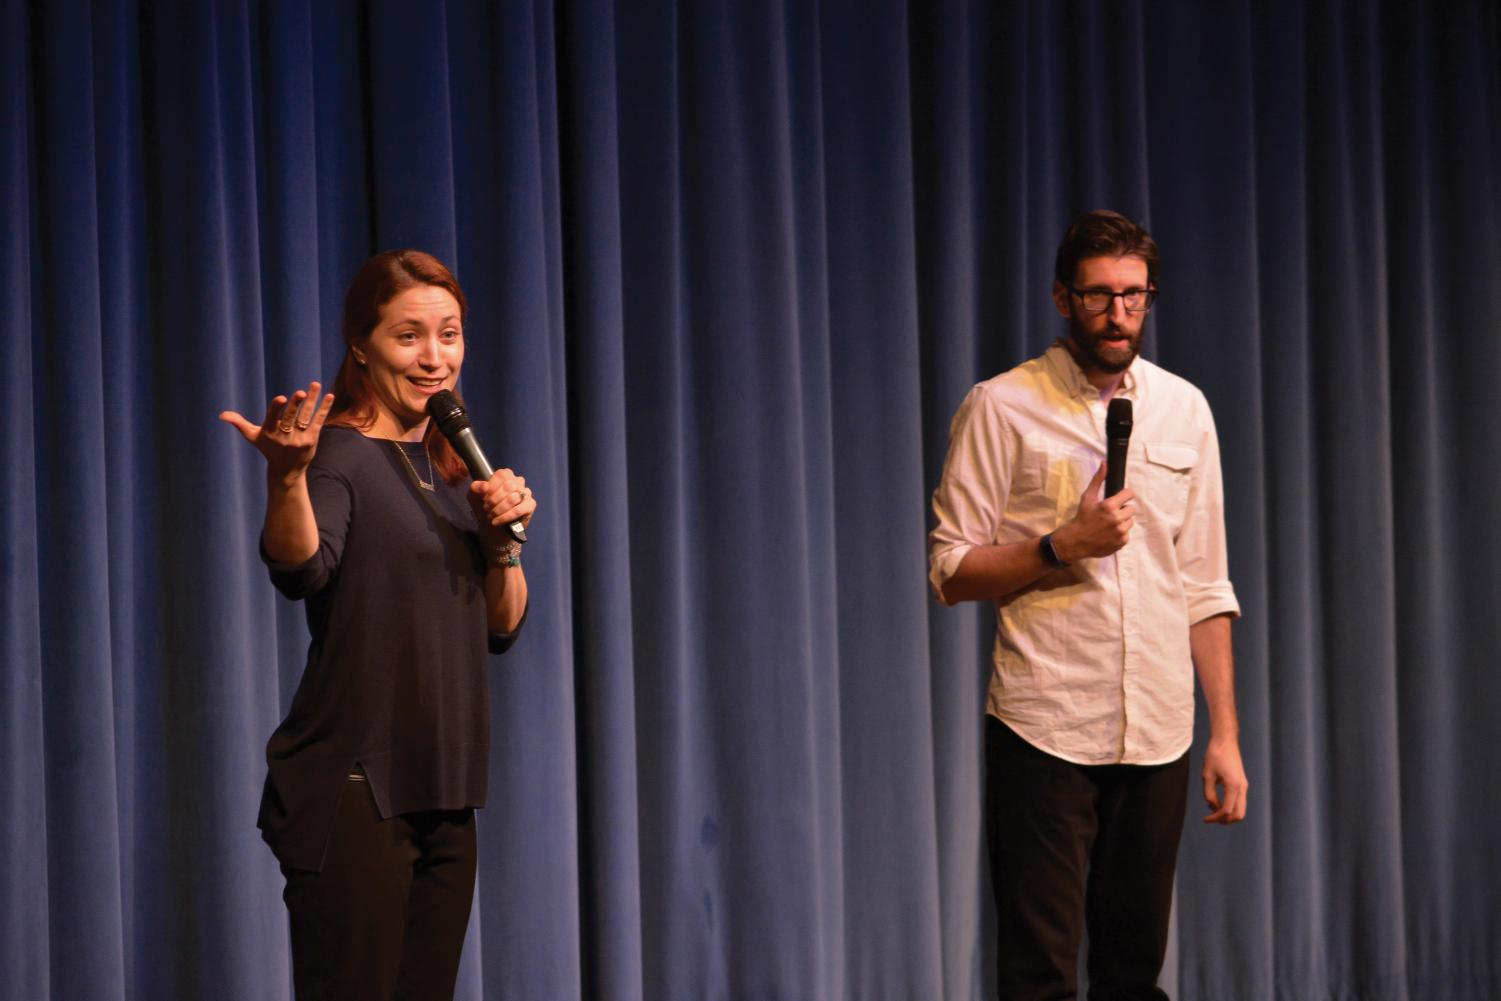 Briana Hanson and Caleb George teach consent through comedy.